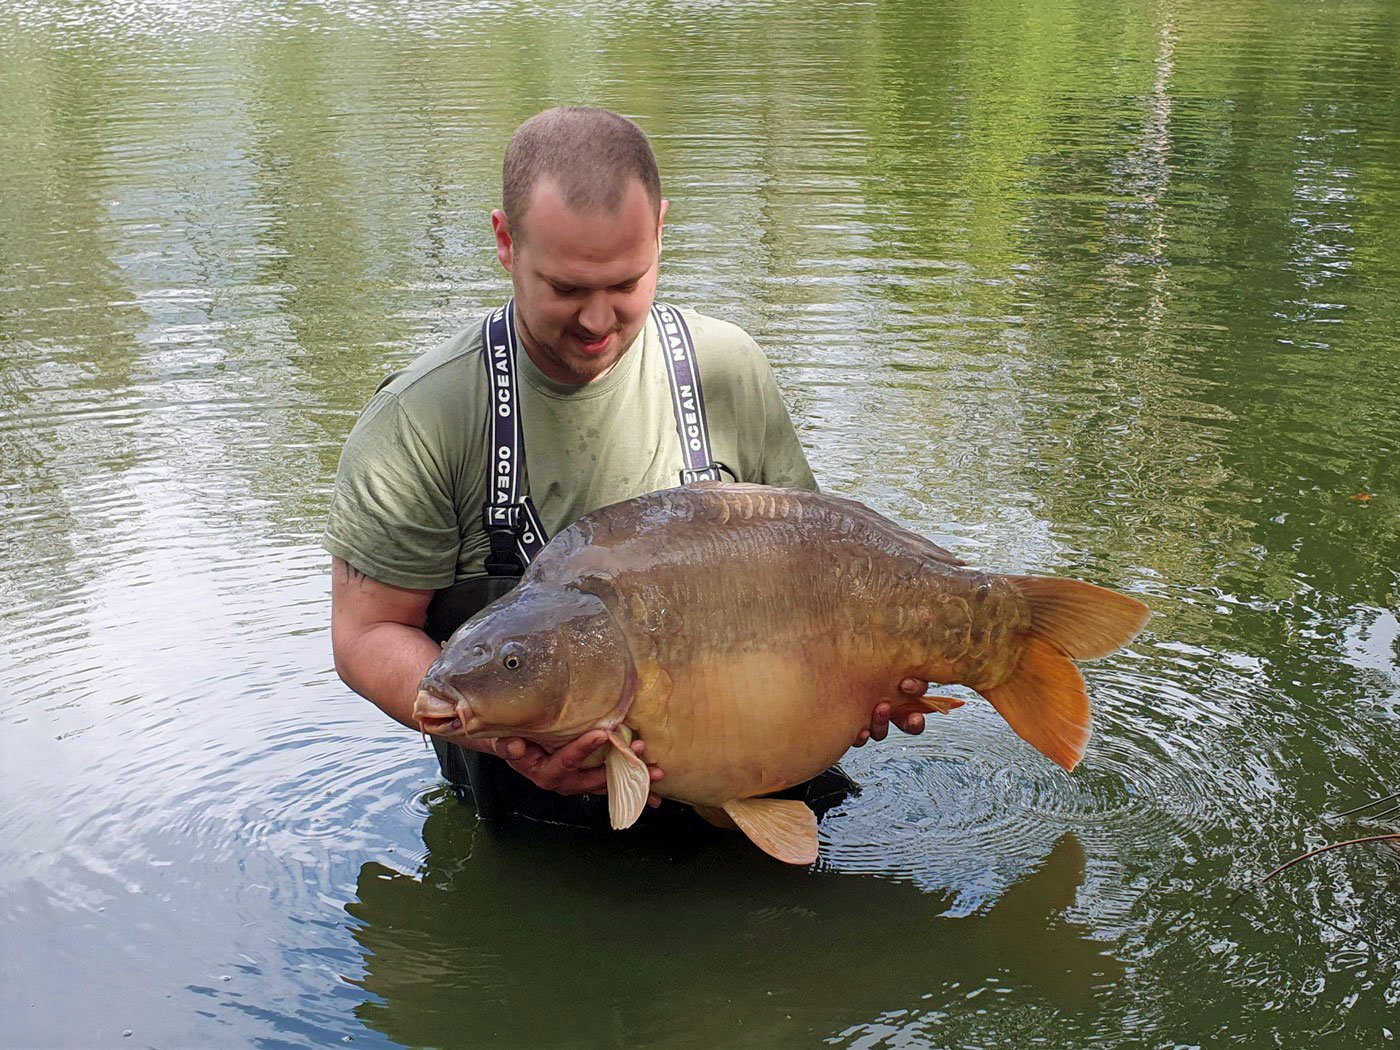 Andy with Gerrard at 38lbs 8oz carp